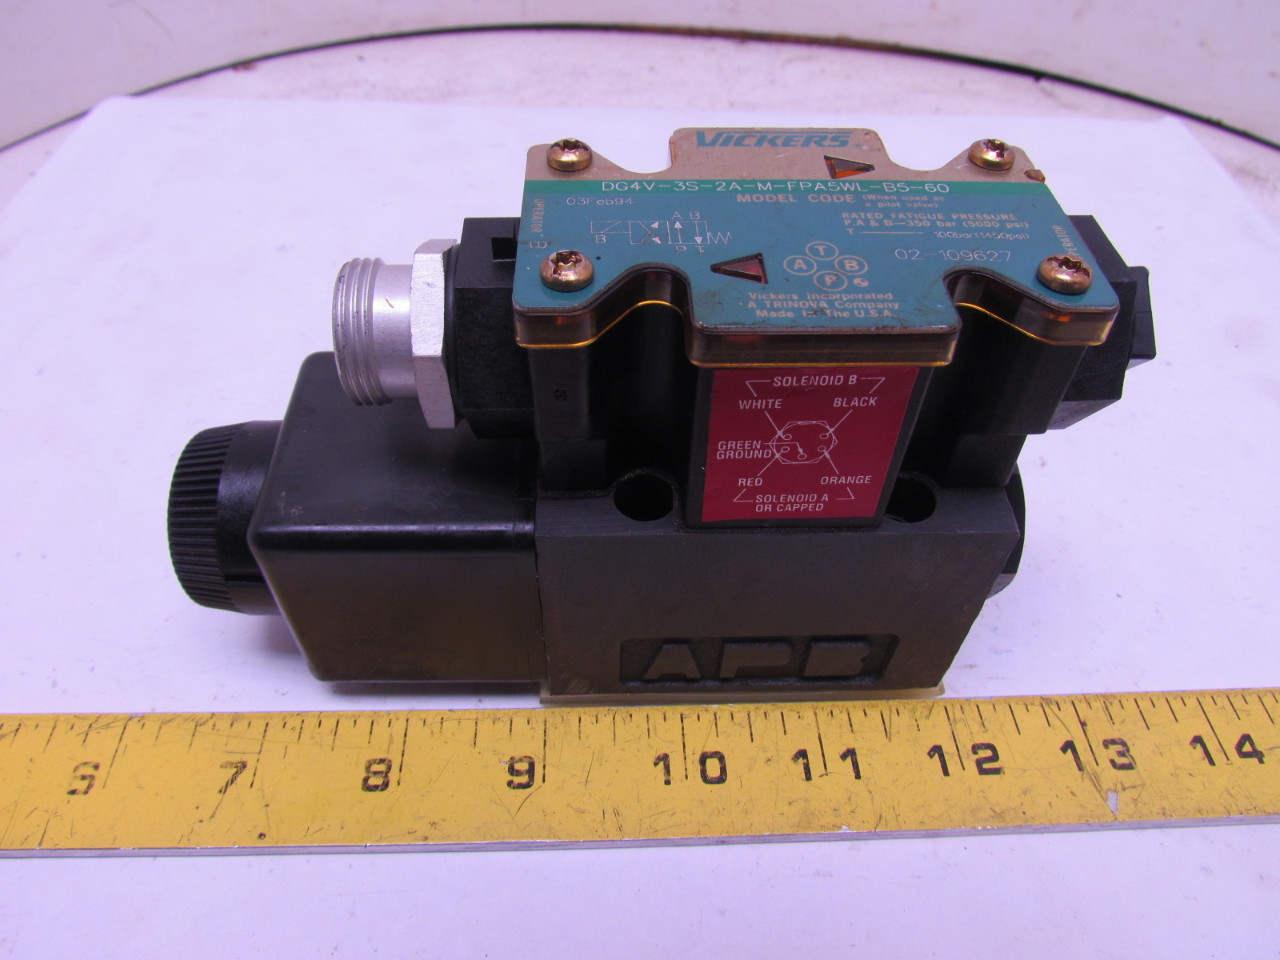 Vickers DG4V-3S-2A-M-FPA5WL-B5-60 Hydraulic Valve 120V 5pin Connector